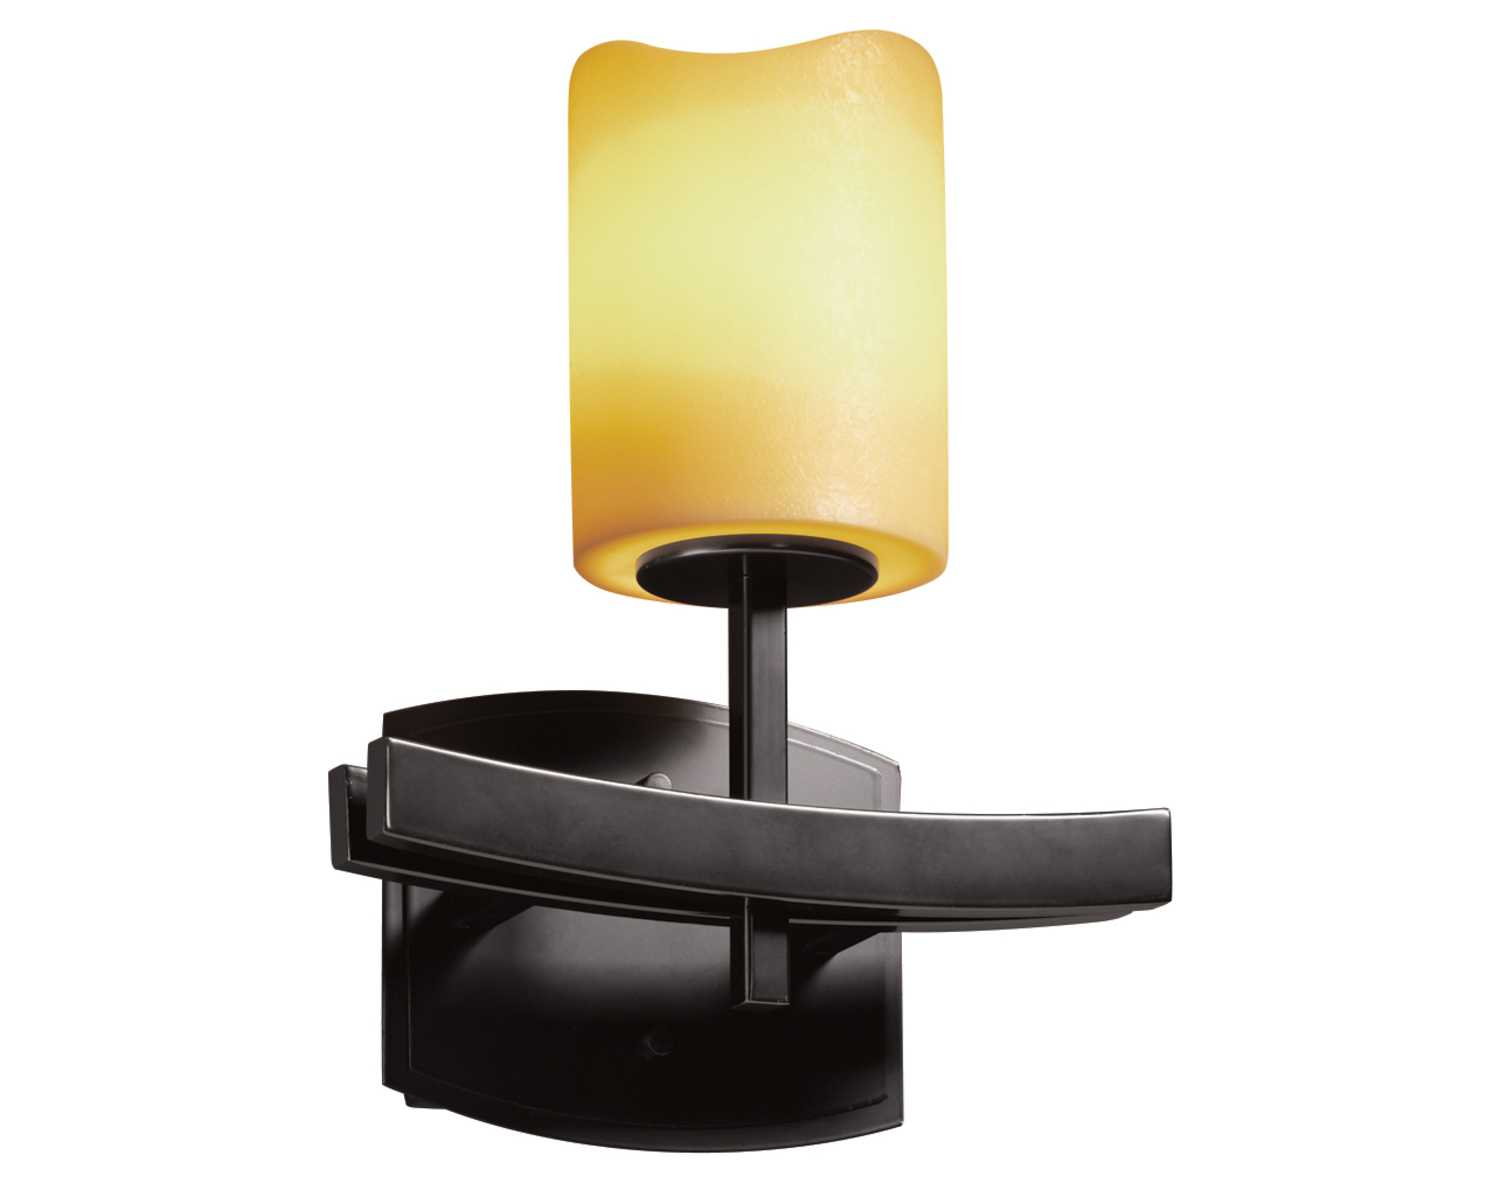 Wall Sconce Faux Candle : Justice Design Group Candlearia Archway Faux Candle Resin Wall Sconce CNDL-8591